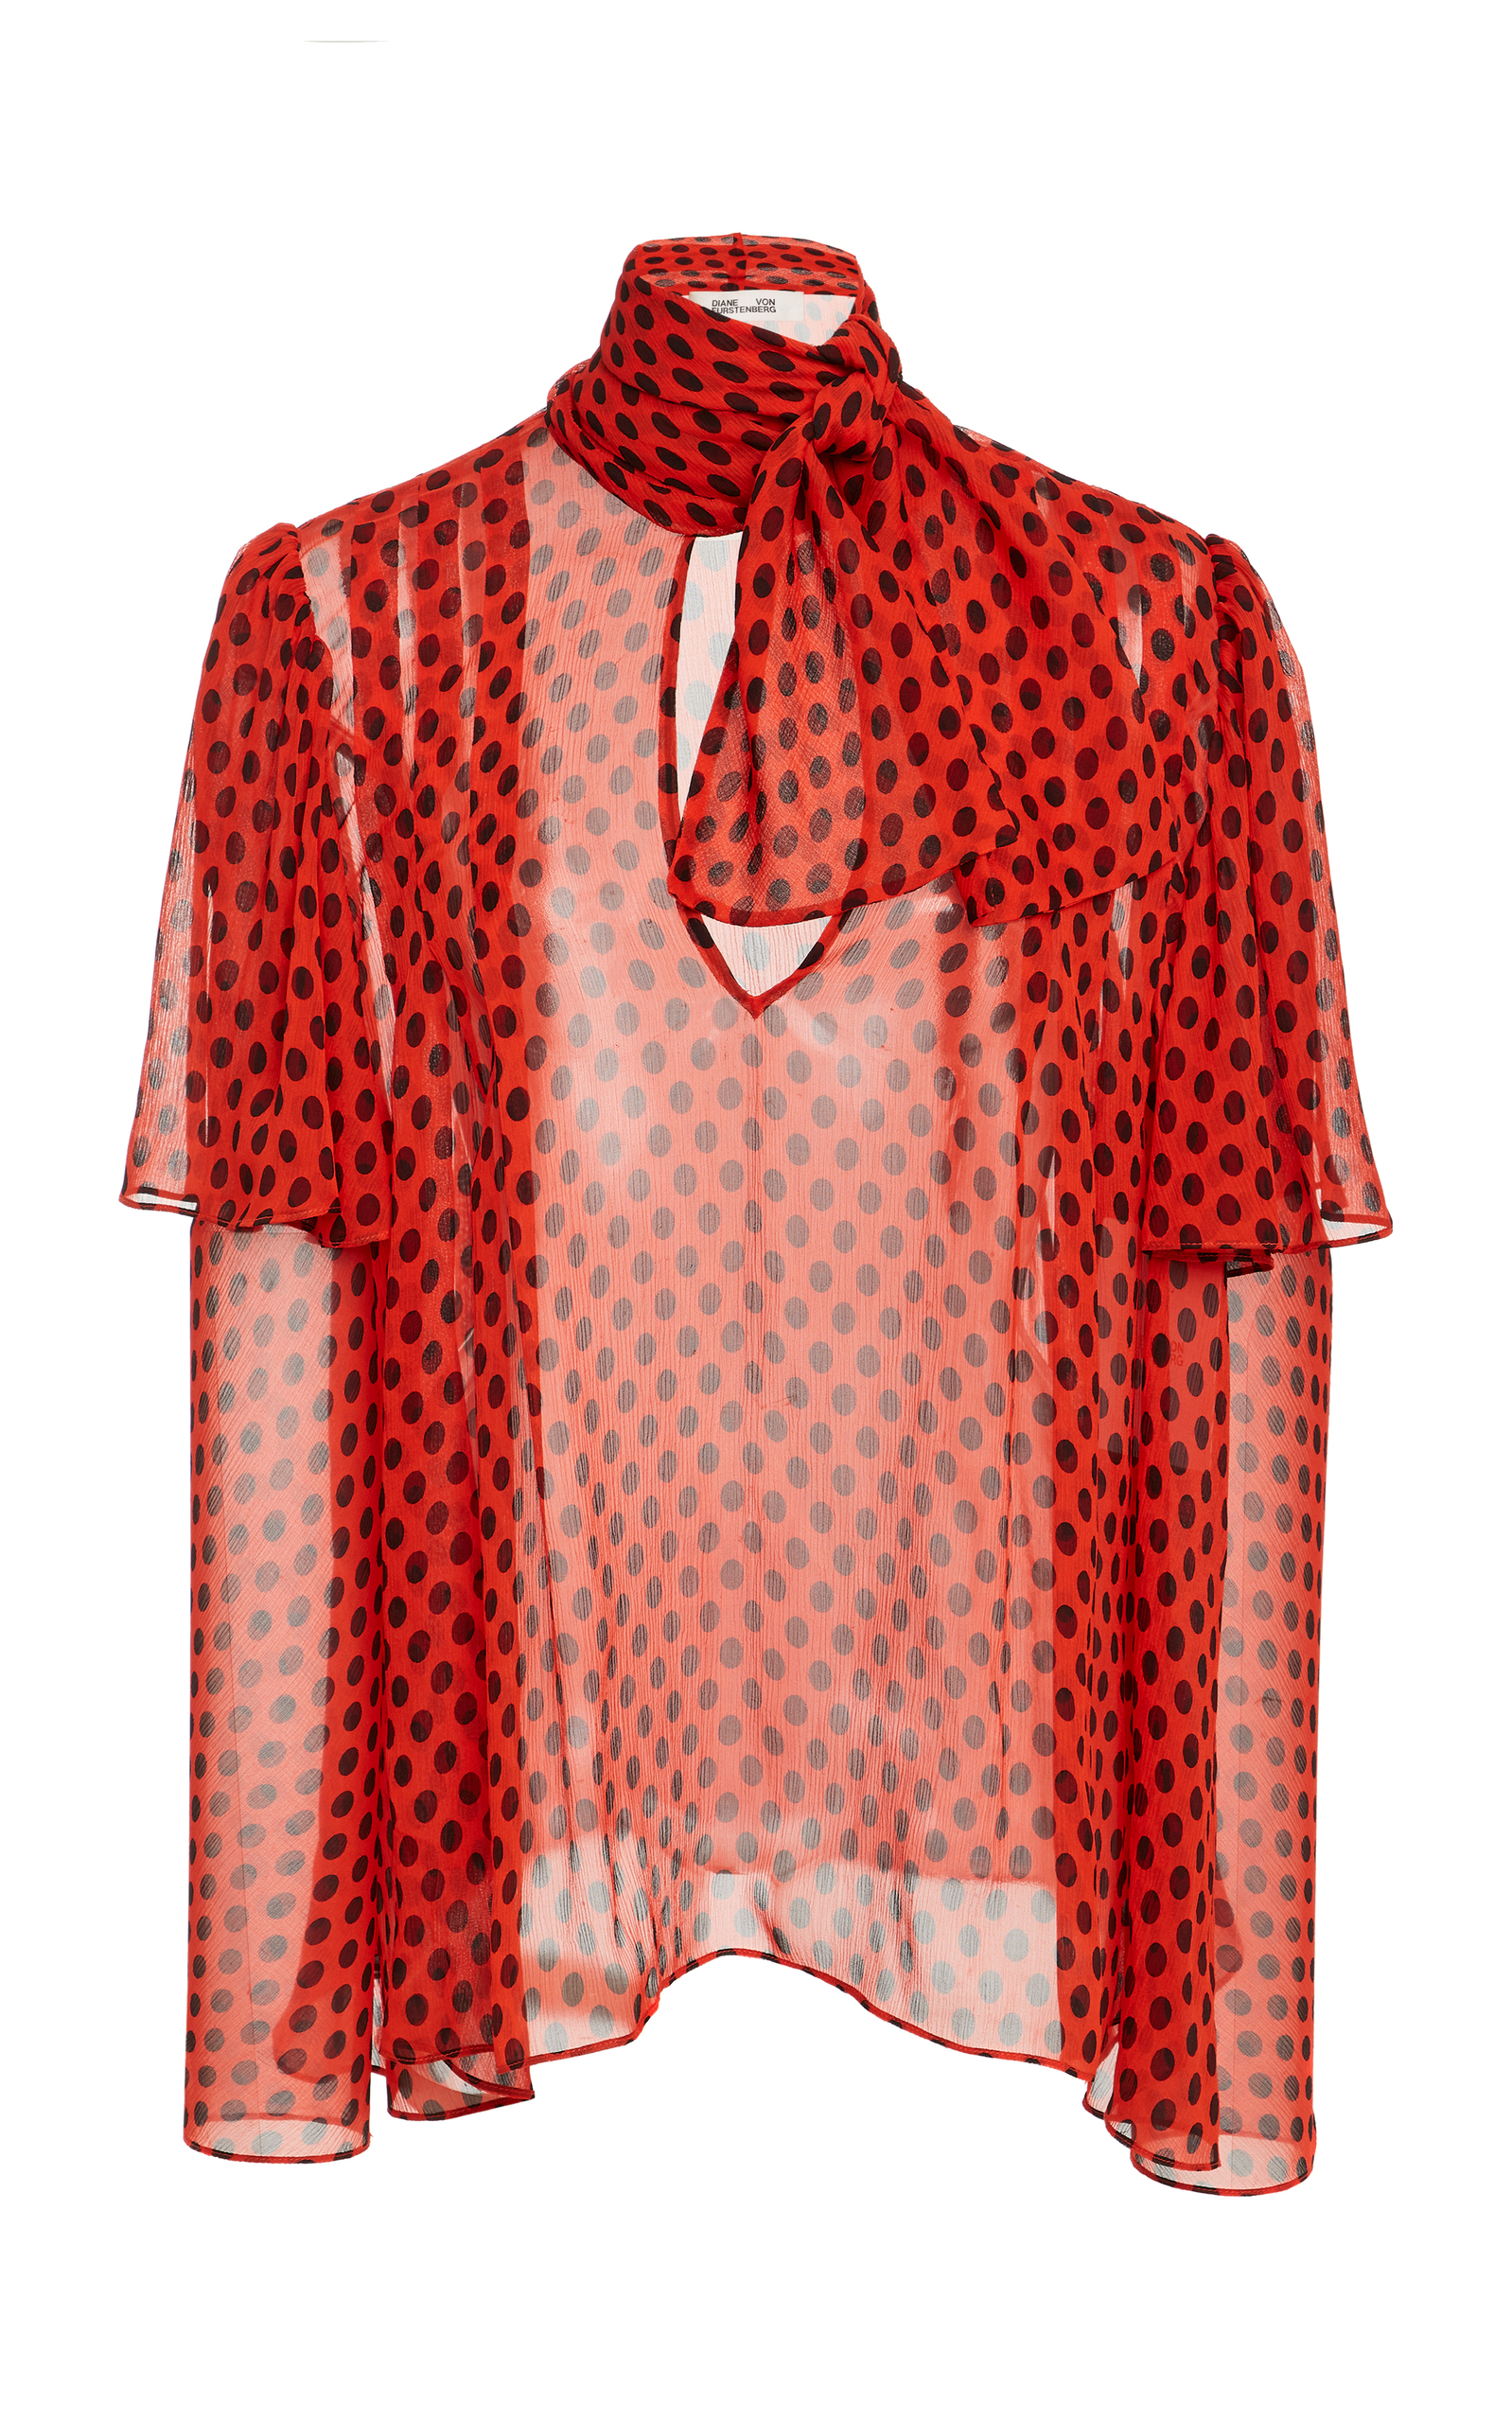 Pussy-Bow Polka-Dot Crinkled Silk-Chiffon Blouse in Red from STYLEBOP.com